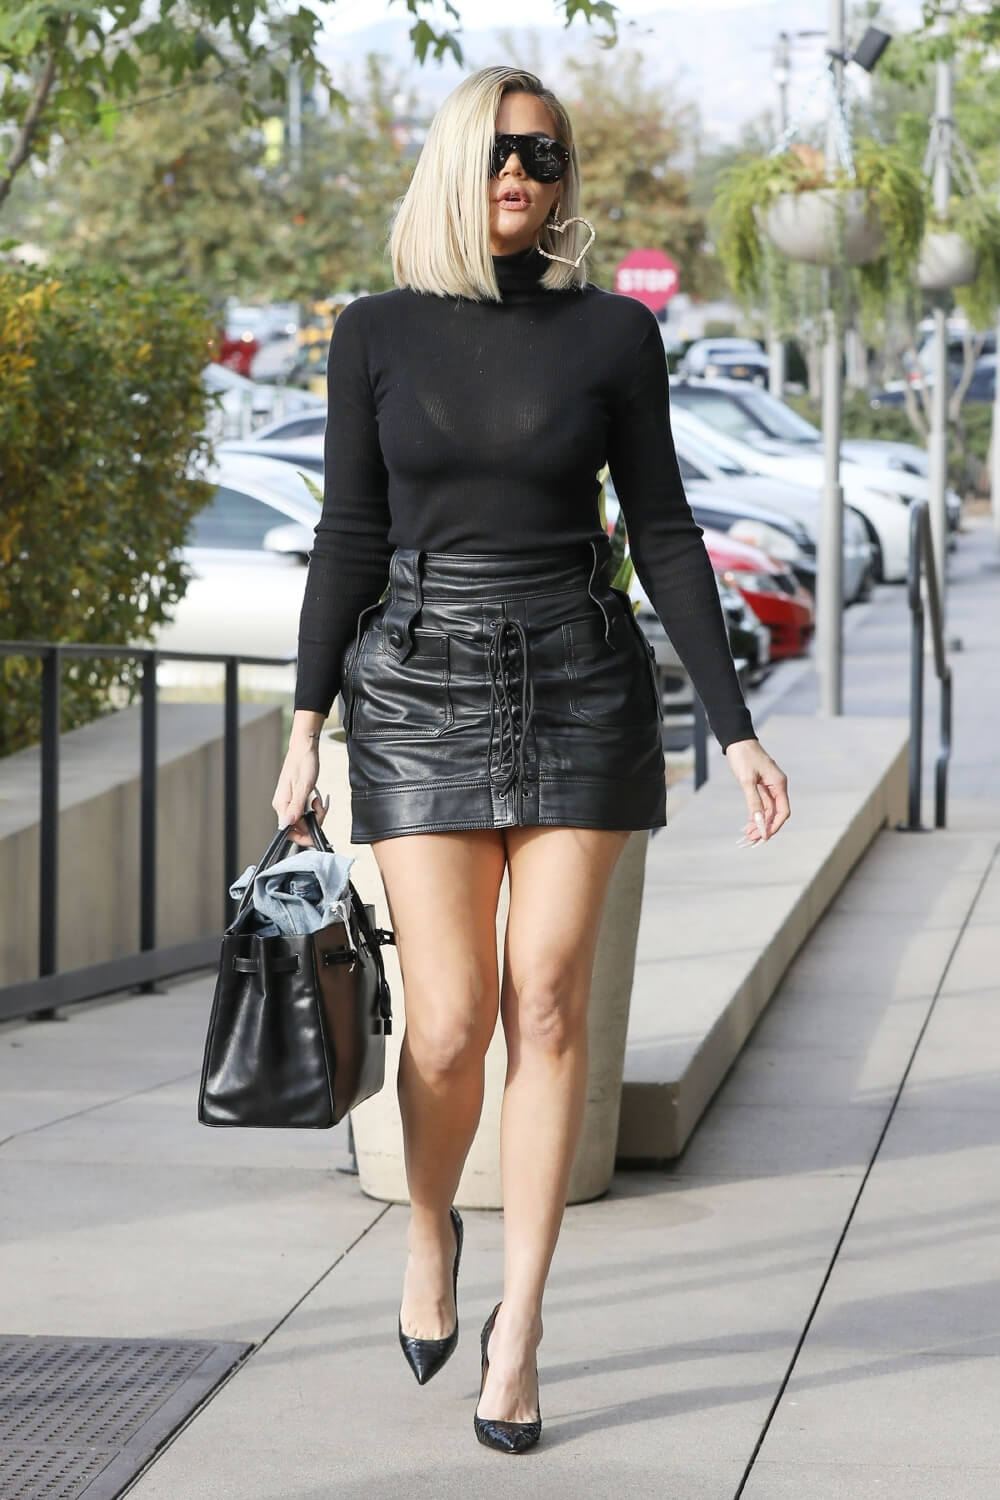 Khloe Kardashian arrives at Villa